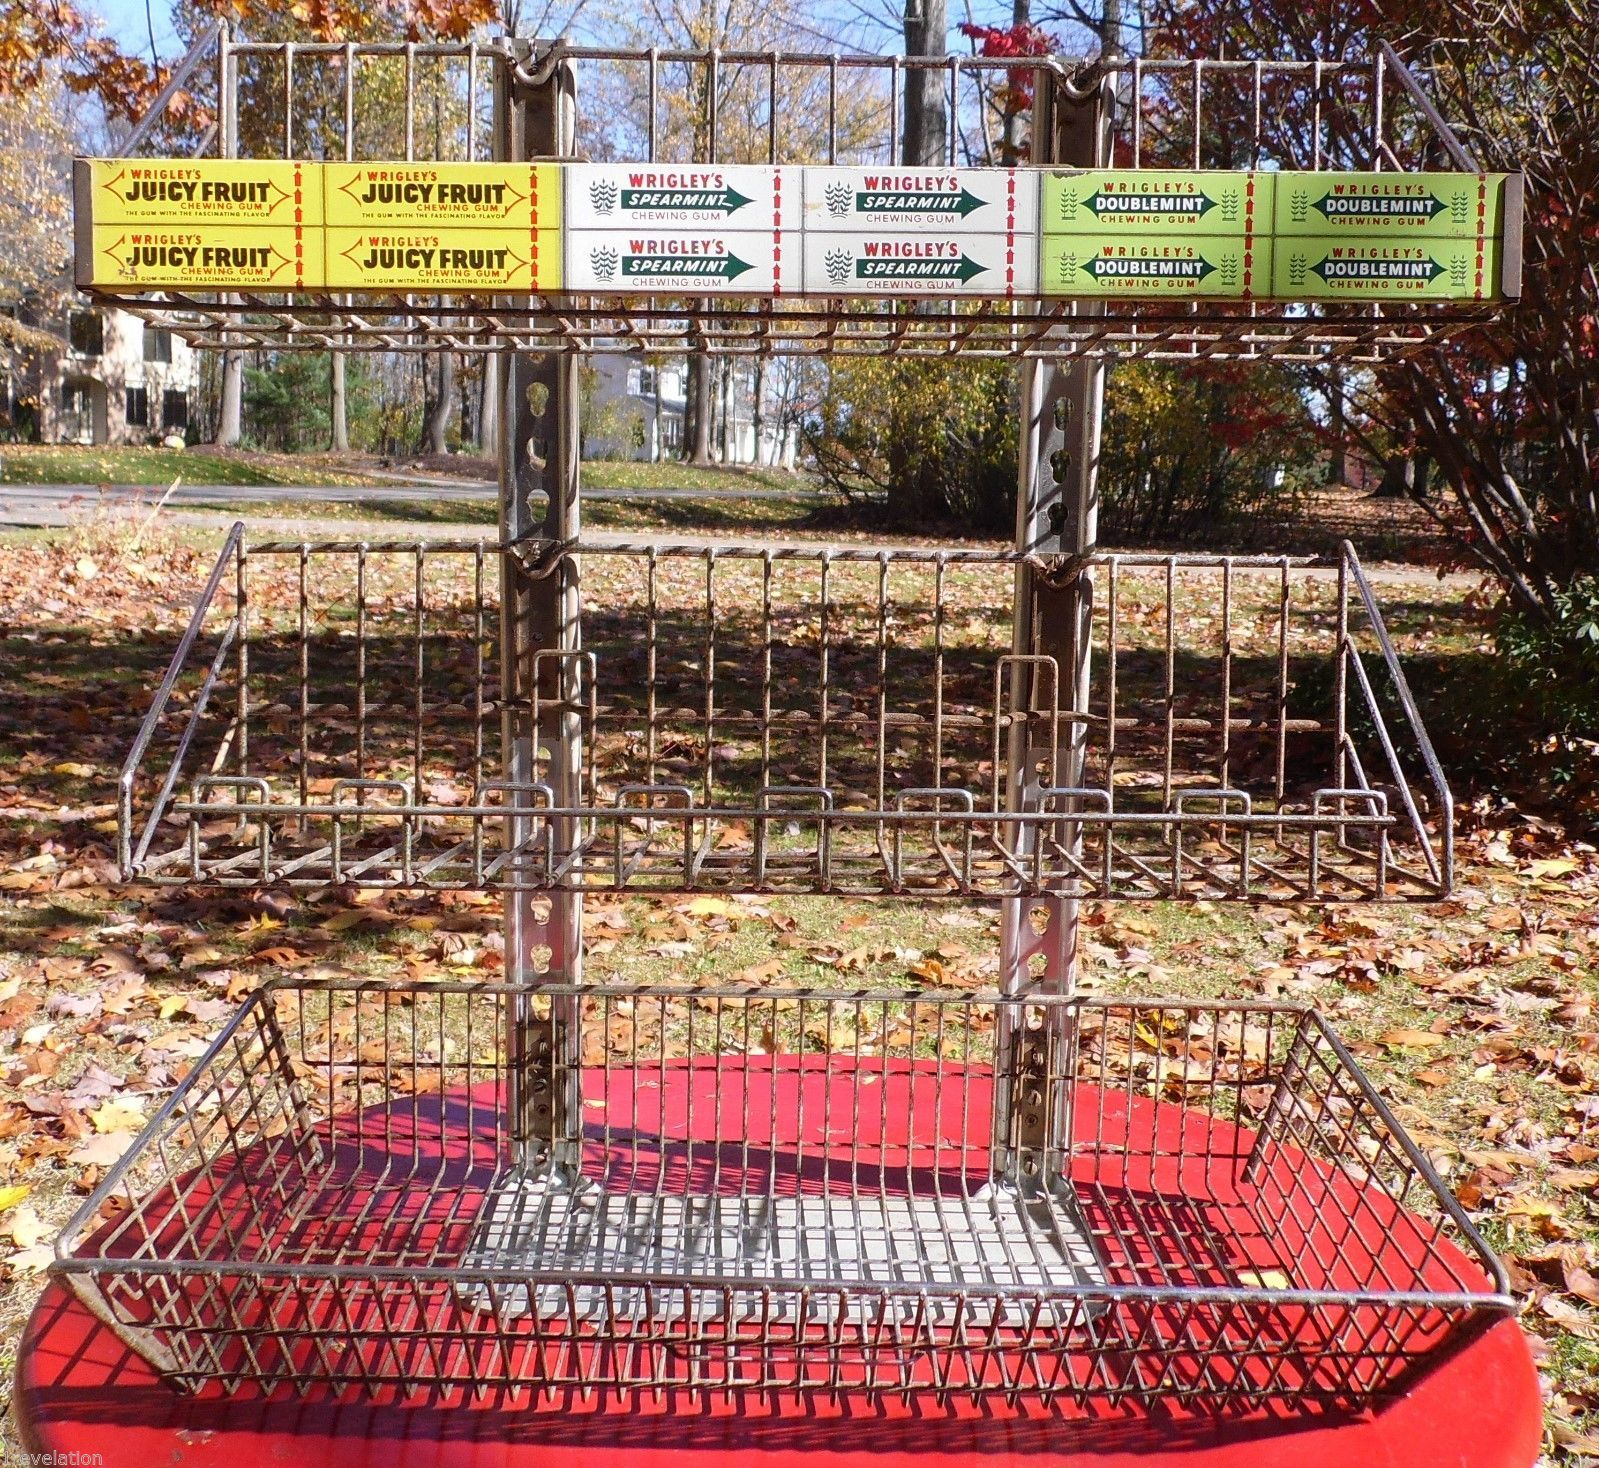 Vintage Wrigley S Gum Display Rack From Mobil Gas Station Upstate New York Wrigley Gas Station Upstate New York